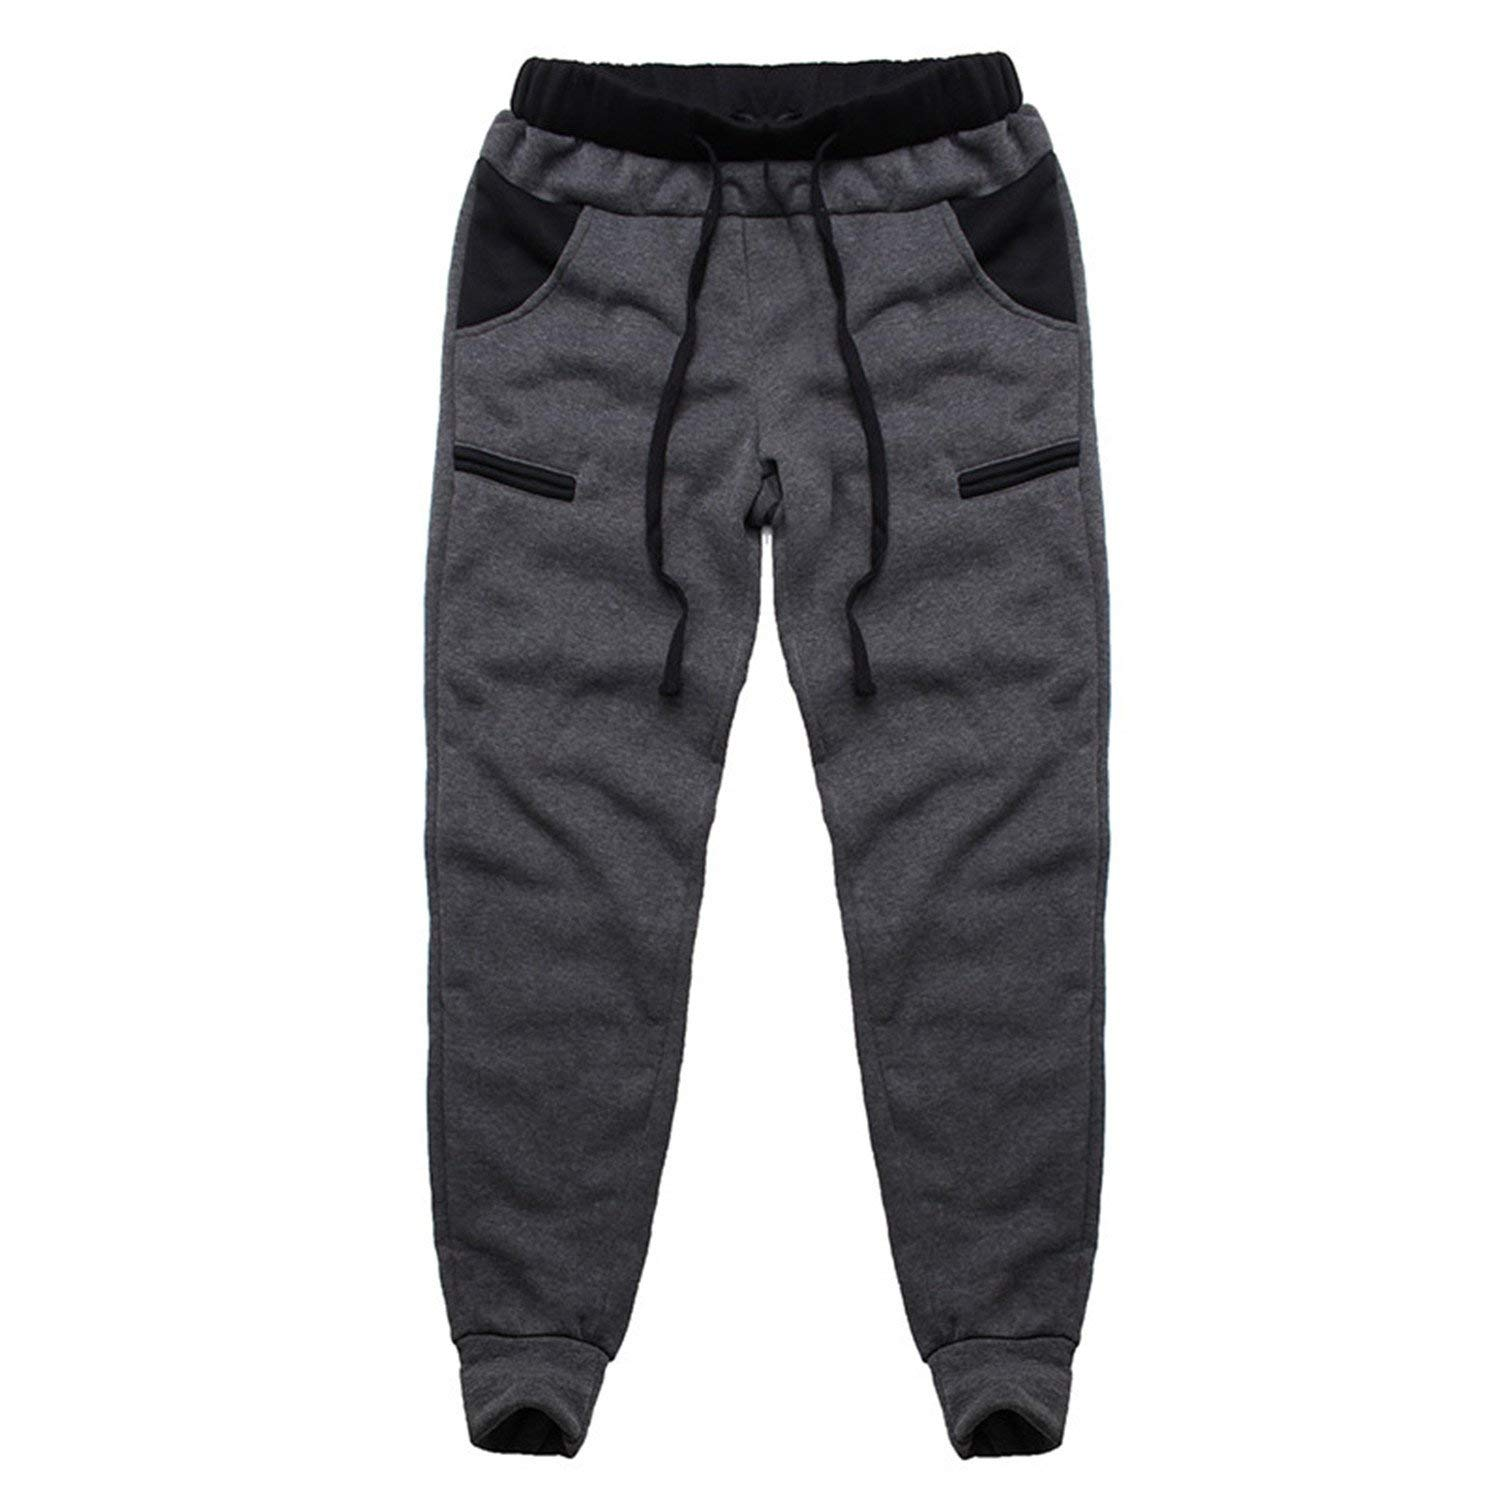 748ba2fda08 Get Quotations · Jeff Tribble Mens Track Pants Casual Baggy Lined Tracksuit Trousers  Jogger Pants Plus Size 3XL